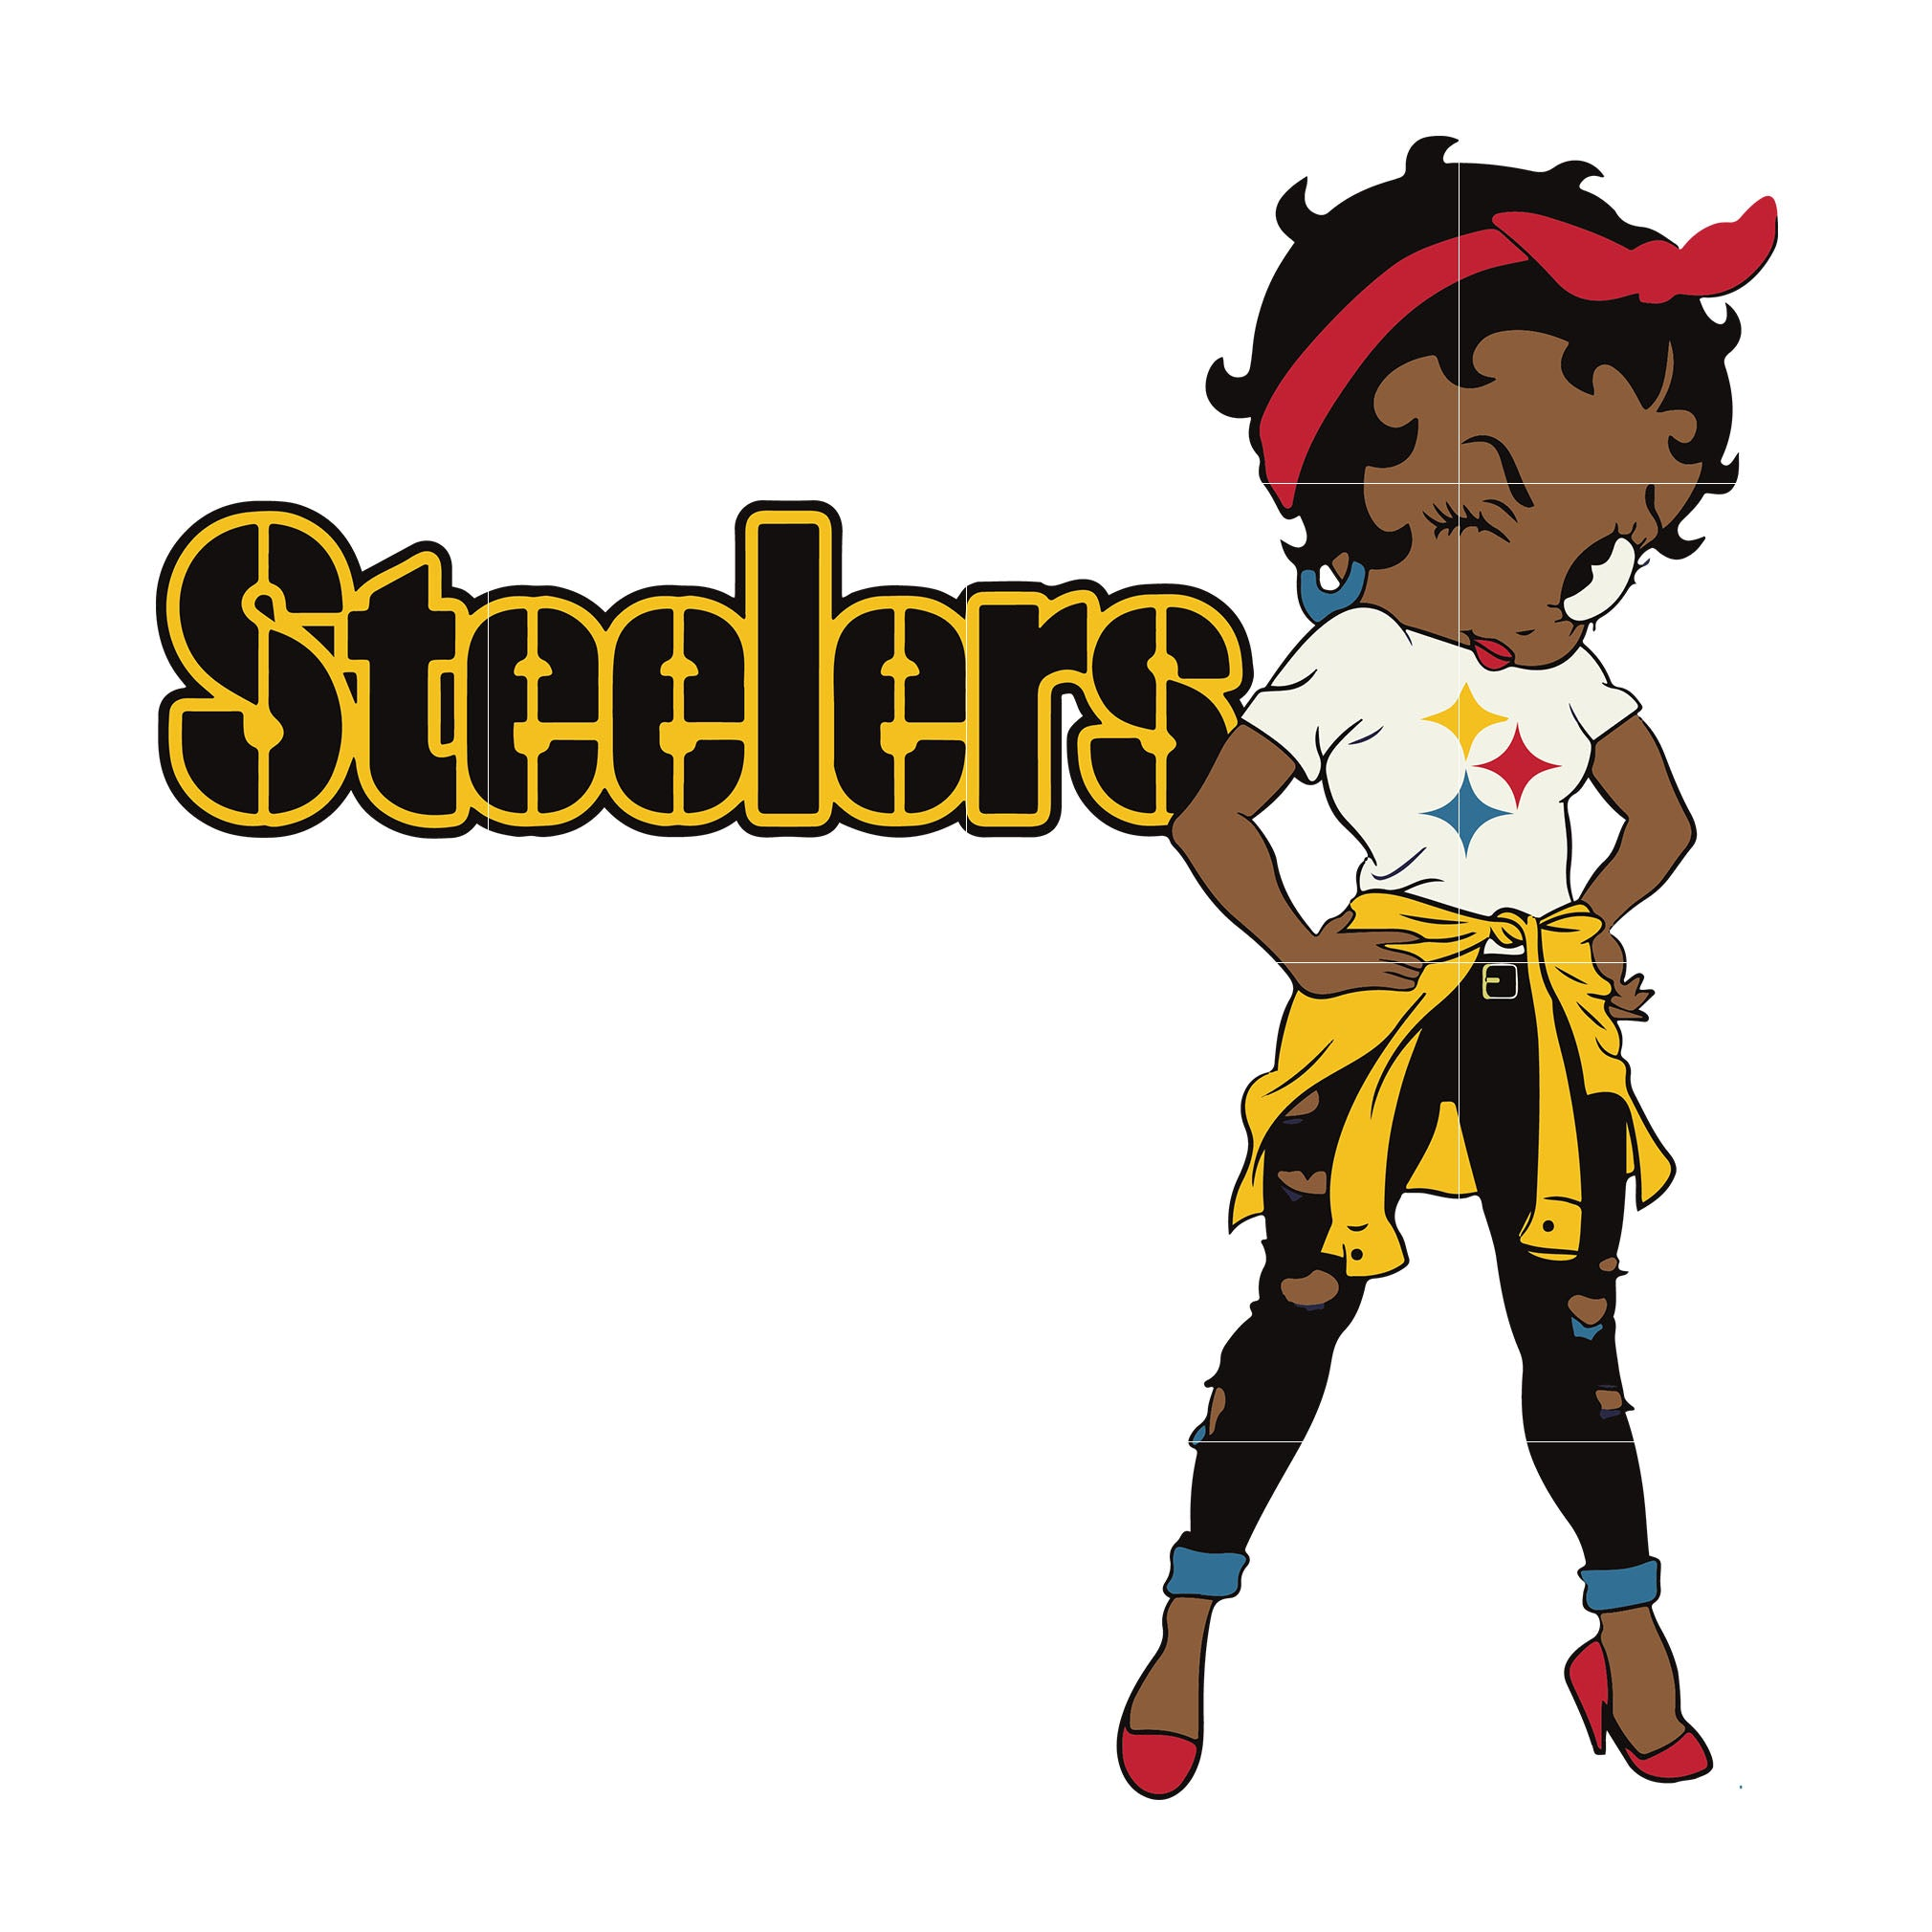 Betty boop Pittsburgh Steelers, Pittsburgh Steelers svg, png, dxf, eps. INSTANT DOWNLOAD